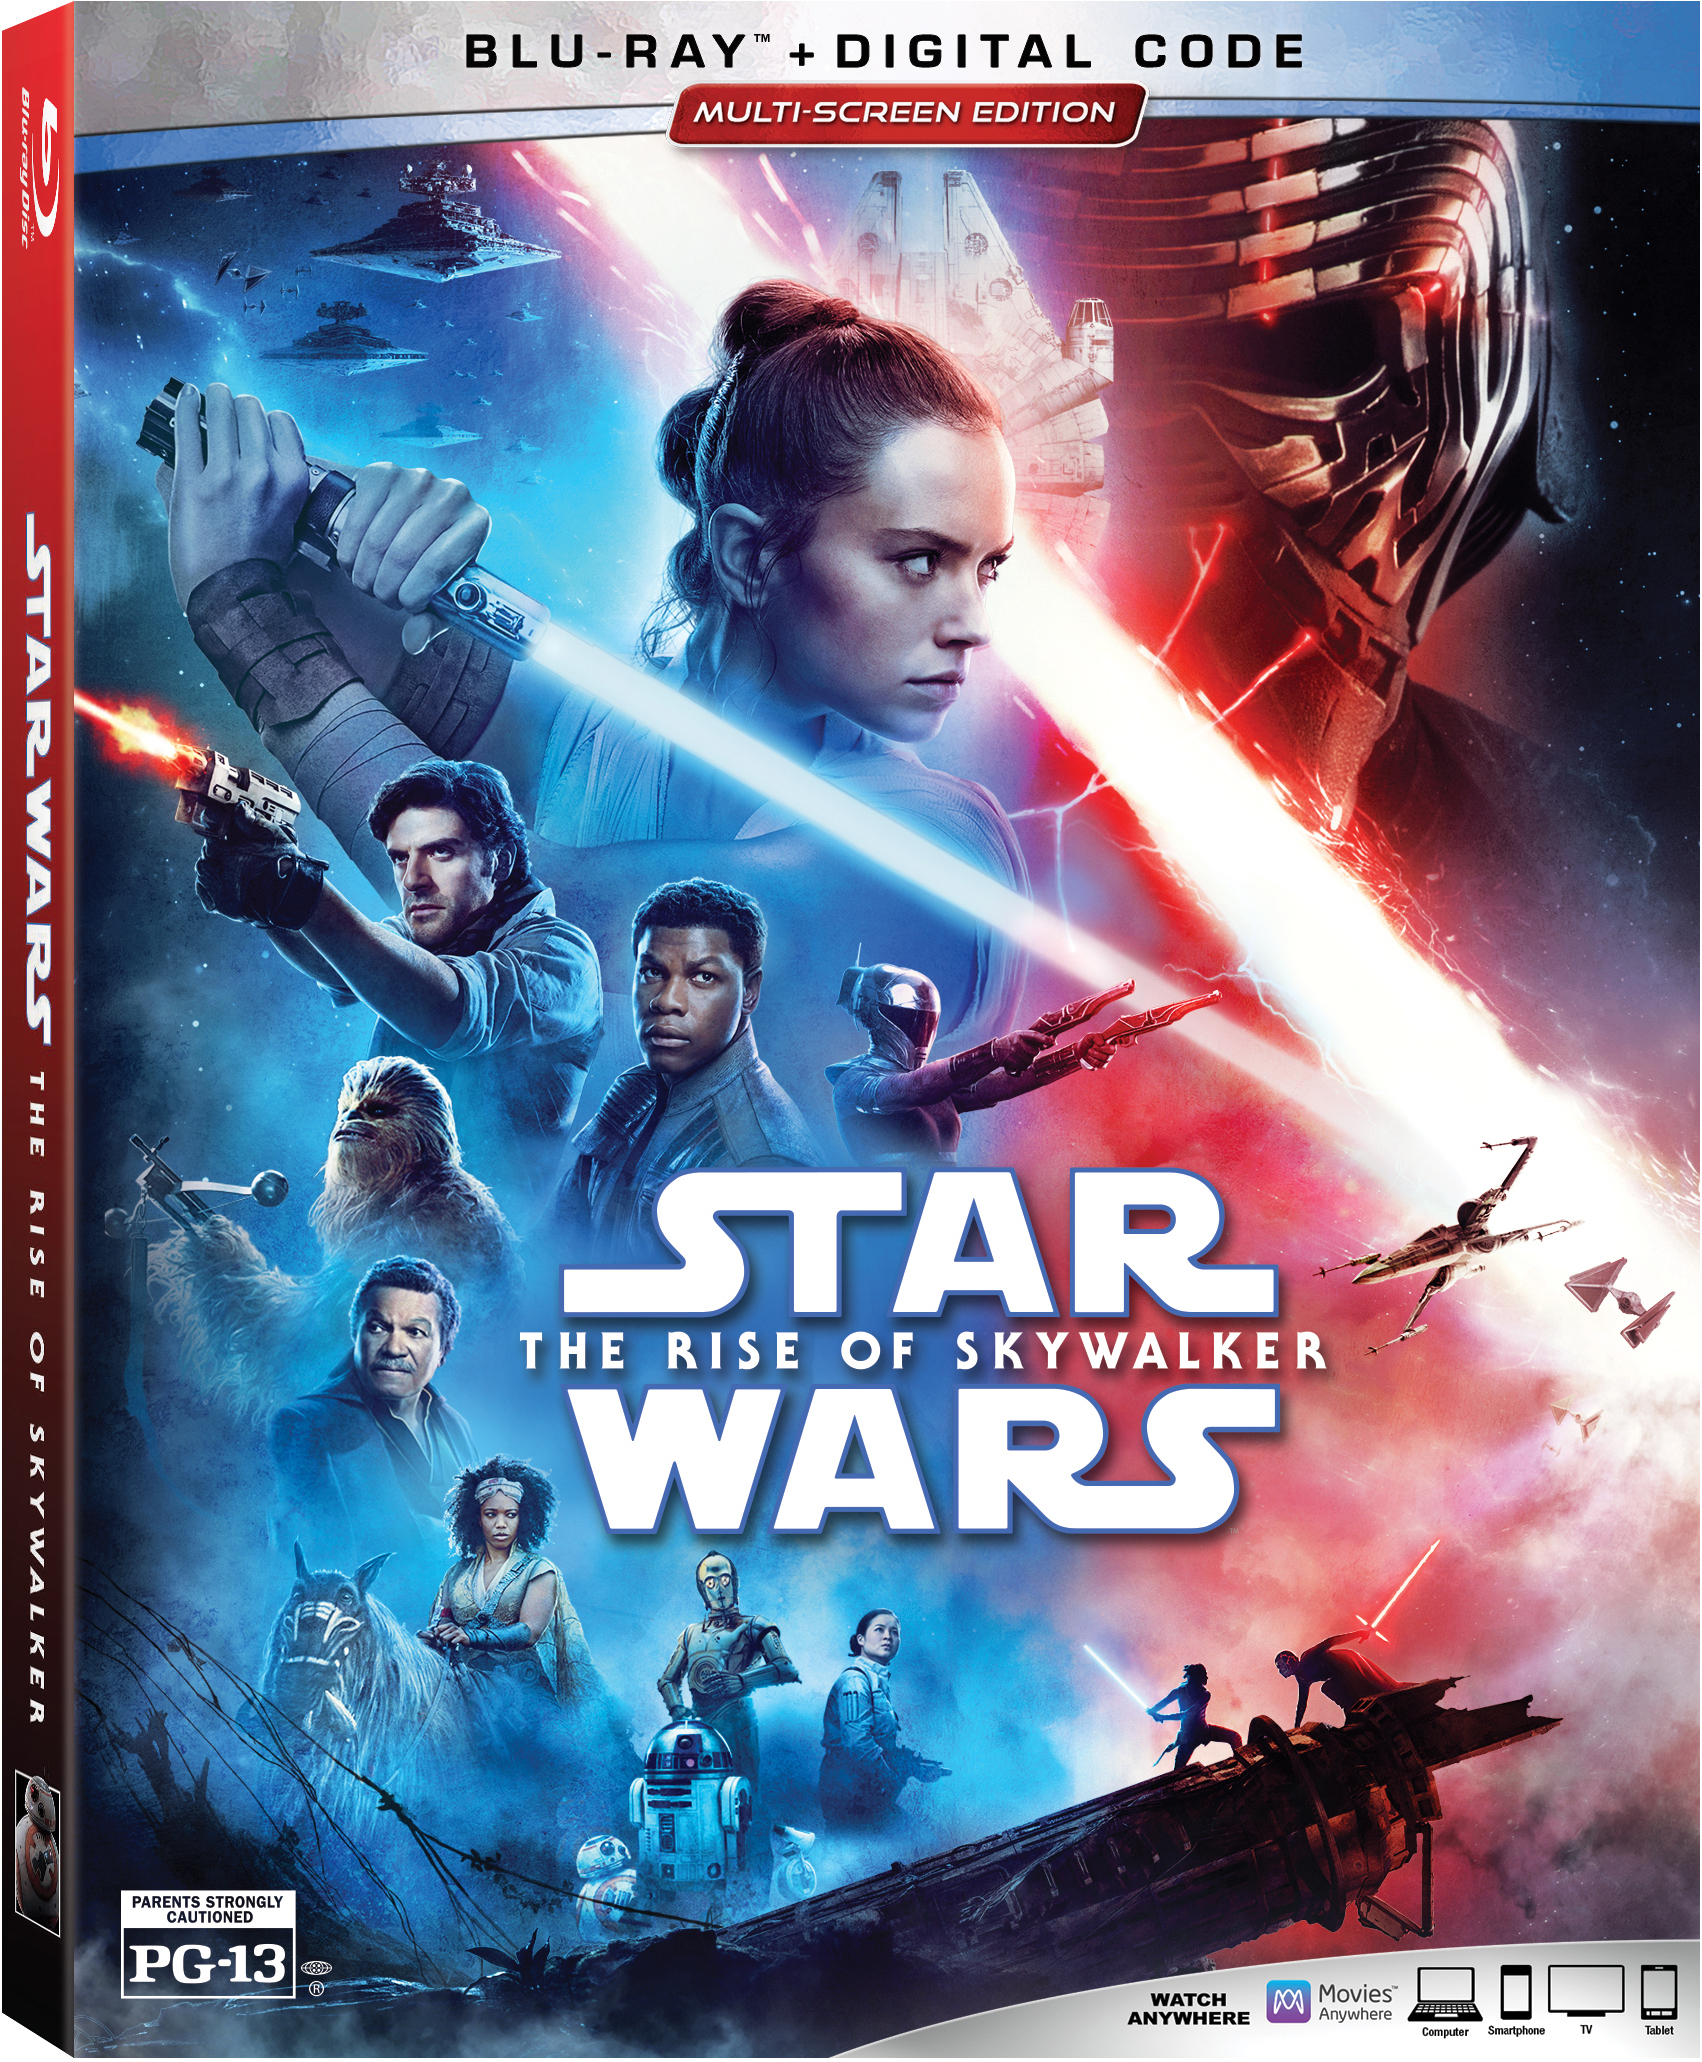 Star Wars Rise of Skywalker Available to Own Today